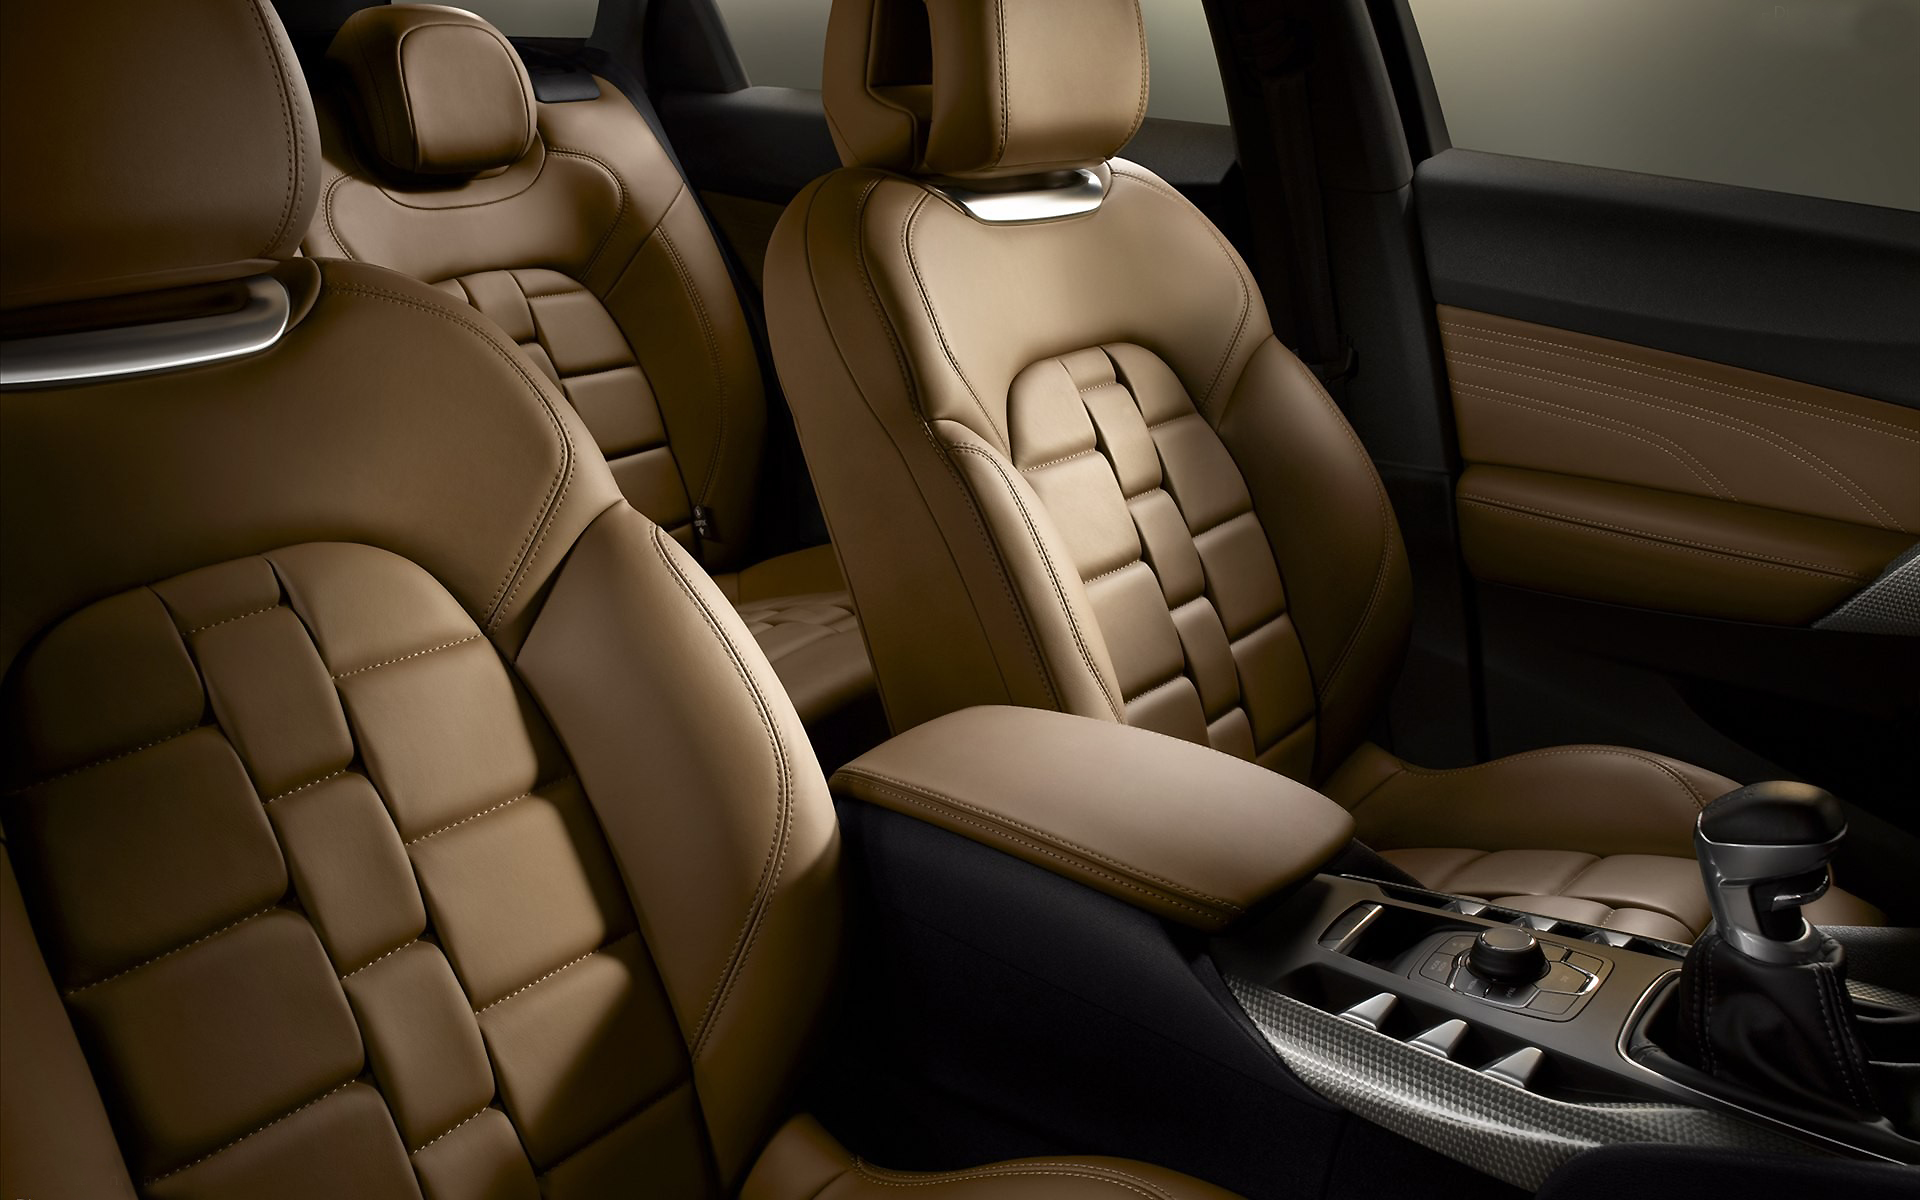 Watchstrap leather seats make for some of the best looking recliners in the all new Citroen DS5.